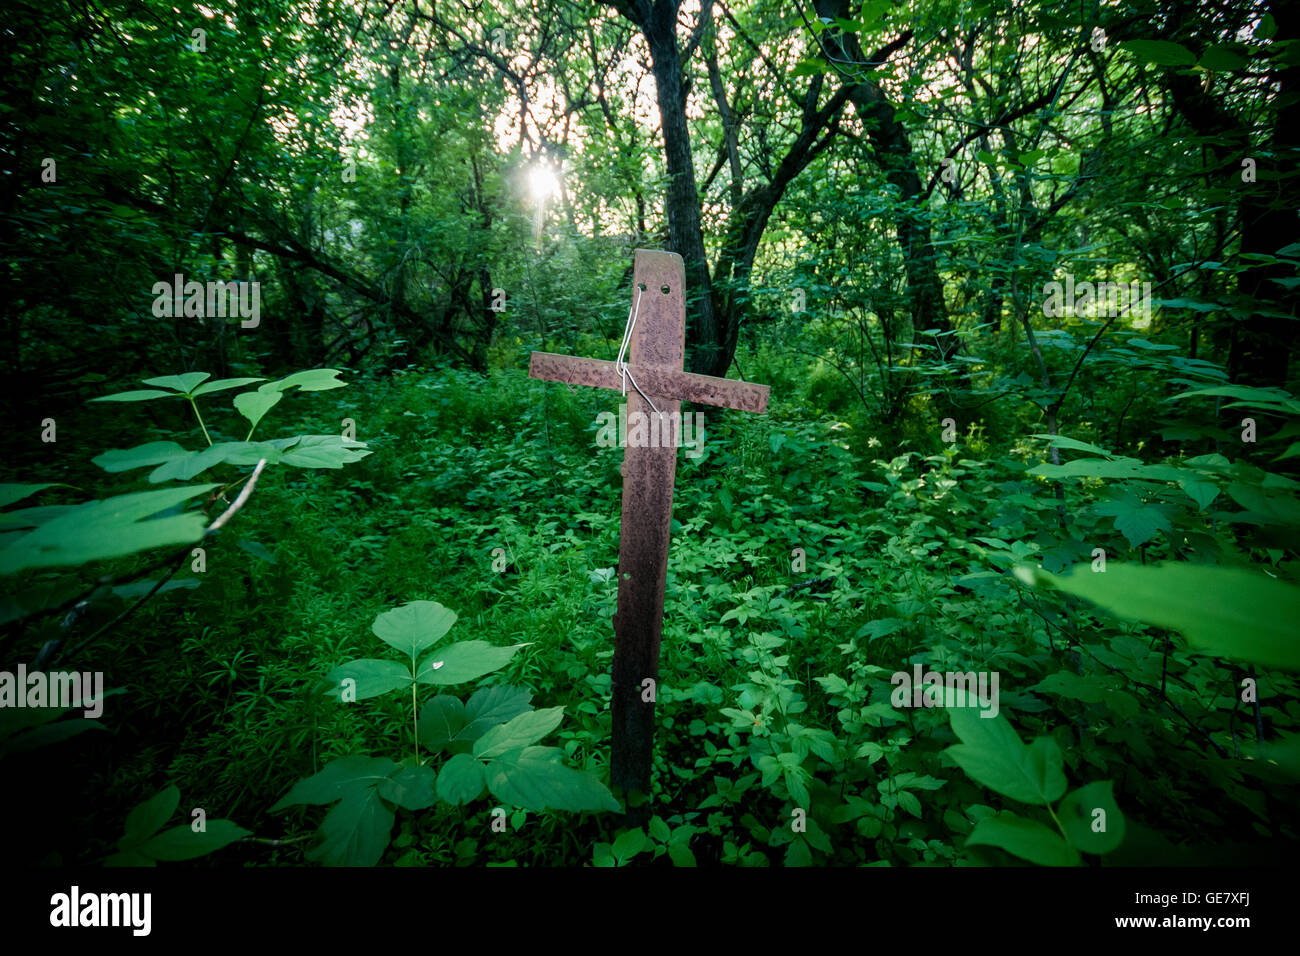 A metal cross marks a grave spot amongst the heavily over-grown foliage inside the Chernobyl exclusion zone, Ukraine. - Stock Image